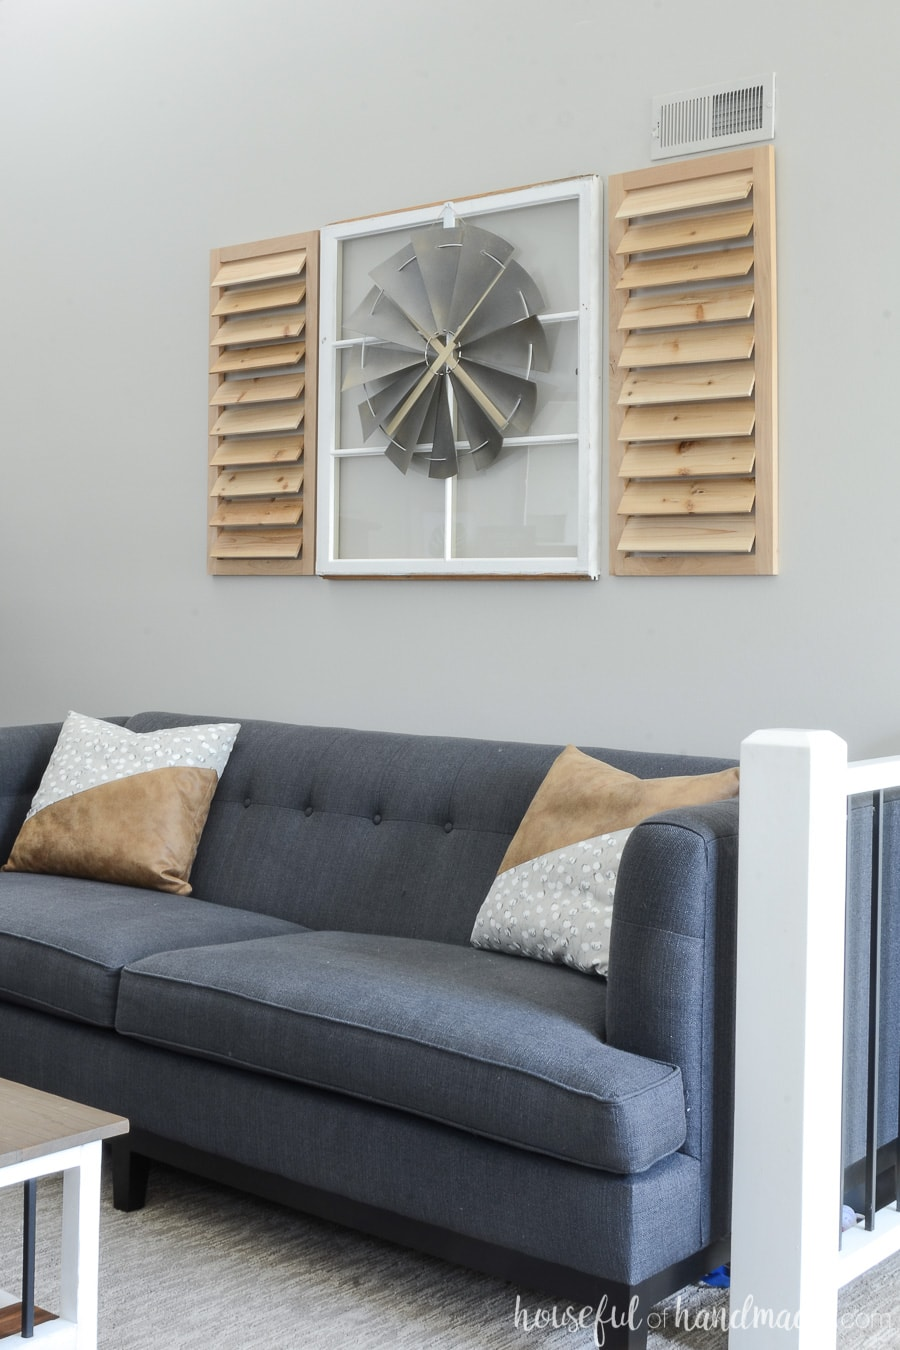 Old window and decorative windmill above a navy blue sofa.